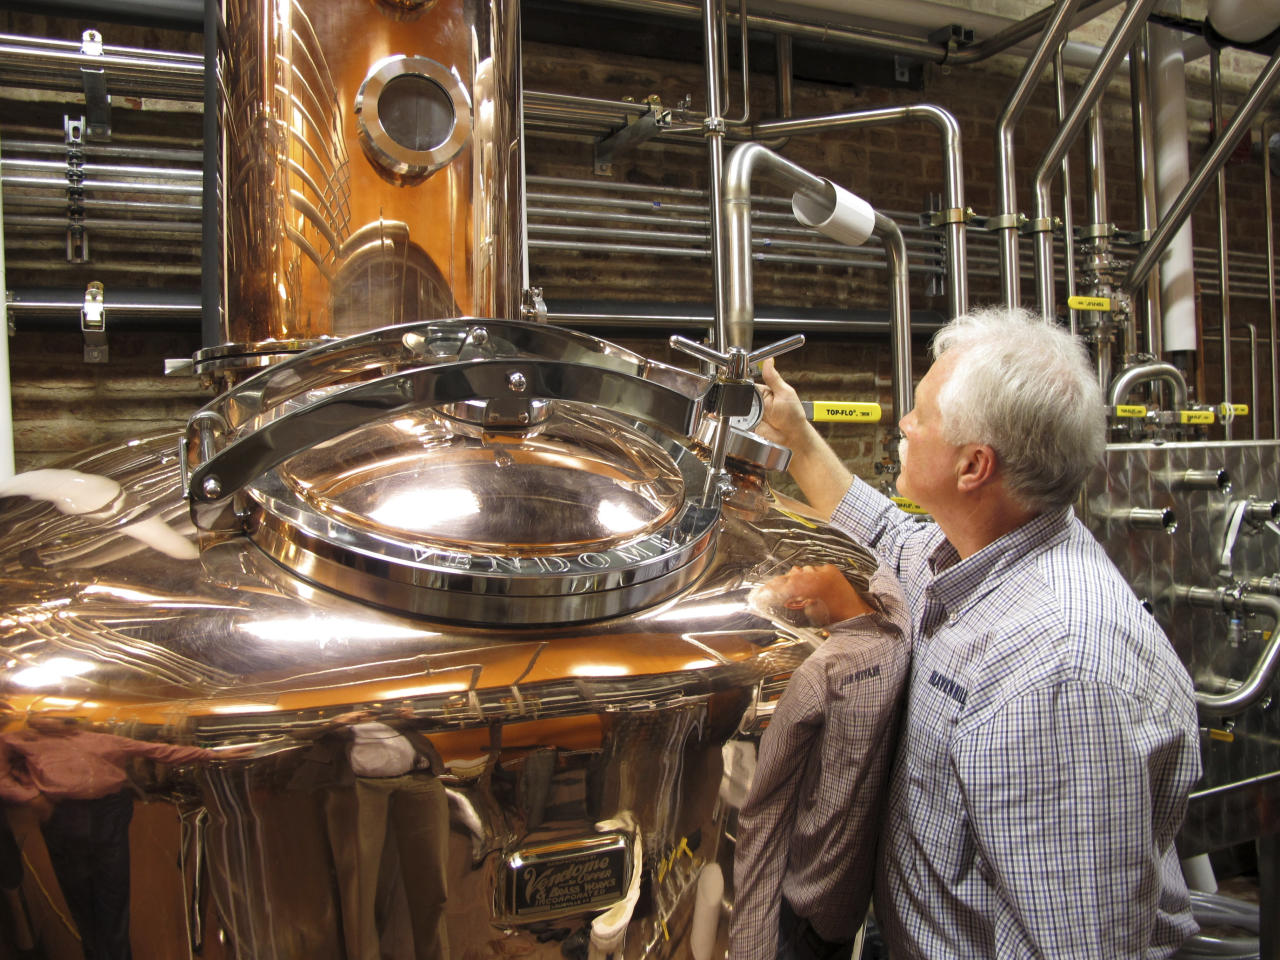 FILE - In this Wednesday Nov. 13, 2013, file photo, Charlie Downs, the artisanal craft distiller at a new Heaven Hill Distilleries tourism attraction in downtown Louisville, Ky., checks gauges on a still that will produce small batches of whiskey. In an effort to woo Amazon's second headquarters to their area, Louisville is playing up its role as the gateway to Kentucky bourbon country. (AP Photo/Bruce Schreiner, File)